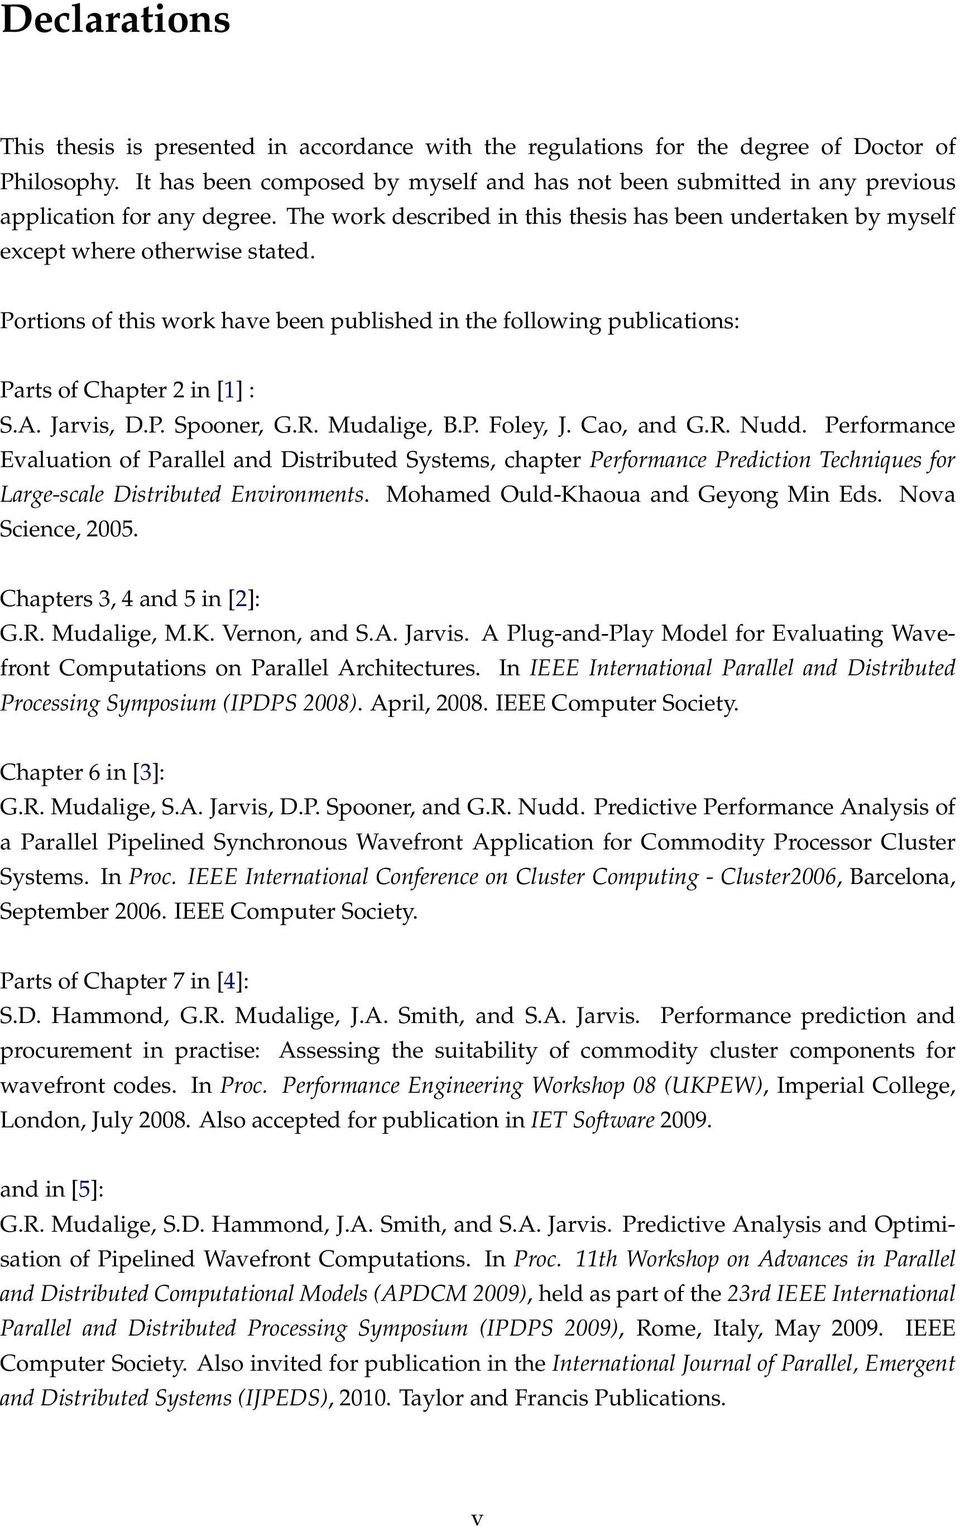 Portions of this work have been published in the following publications: Parts of Chapter 2 in [1] : S.A. Jarvis, D.P. Spooner, G.R. Mudalige, B.P. Foley, J. Cao, and G.R. Nudd.